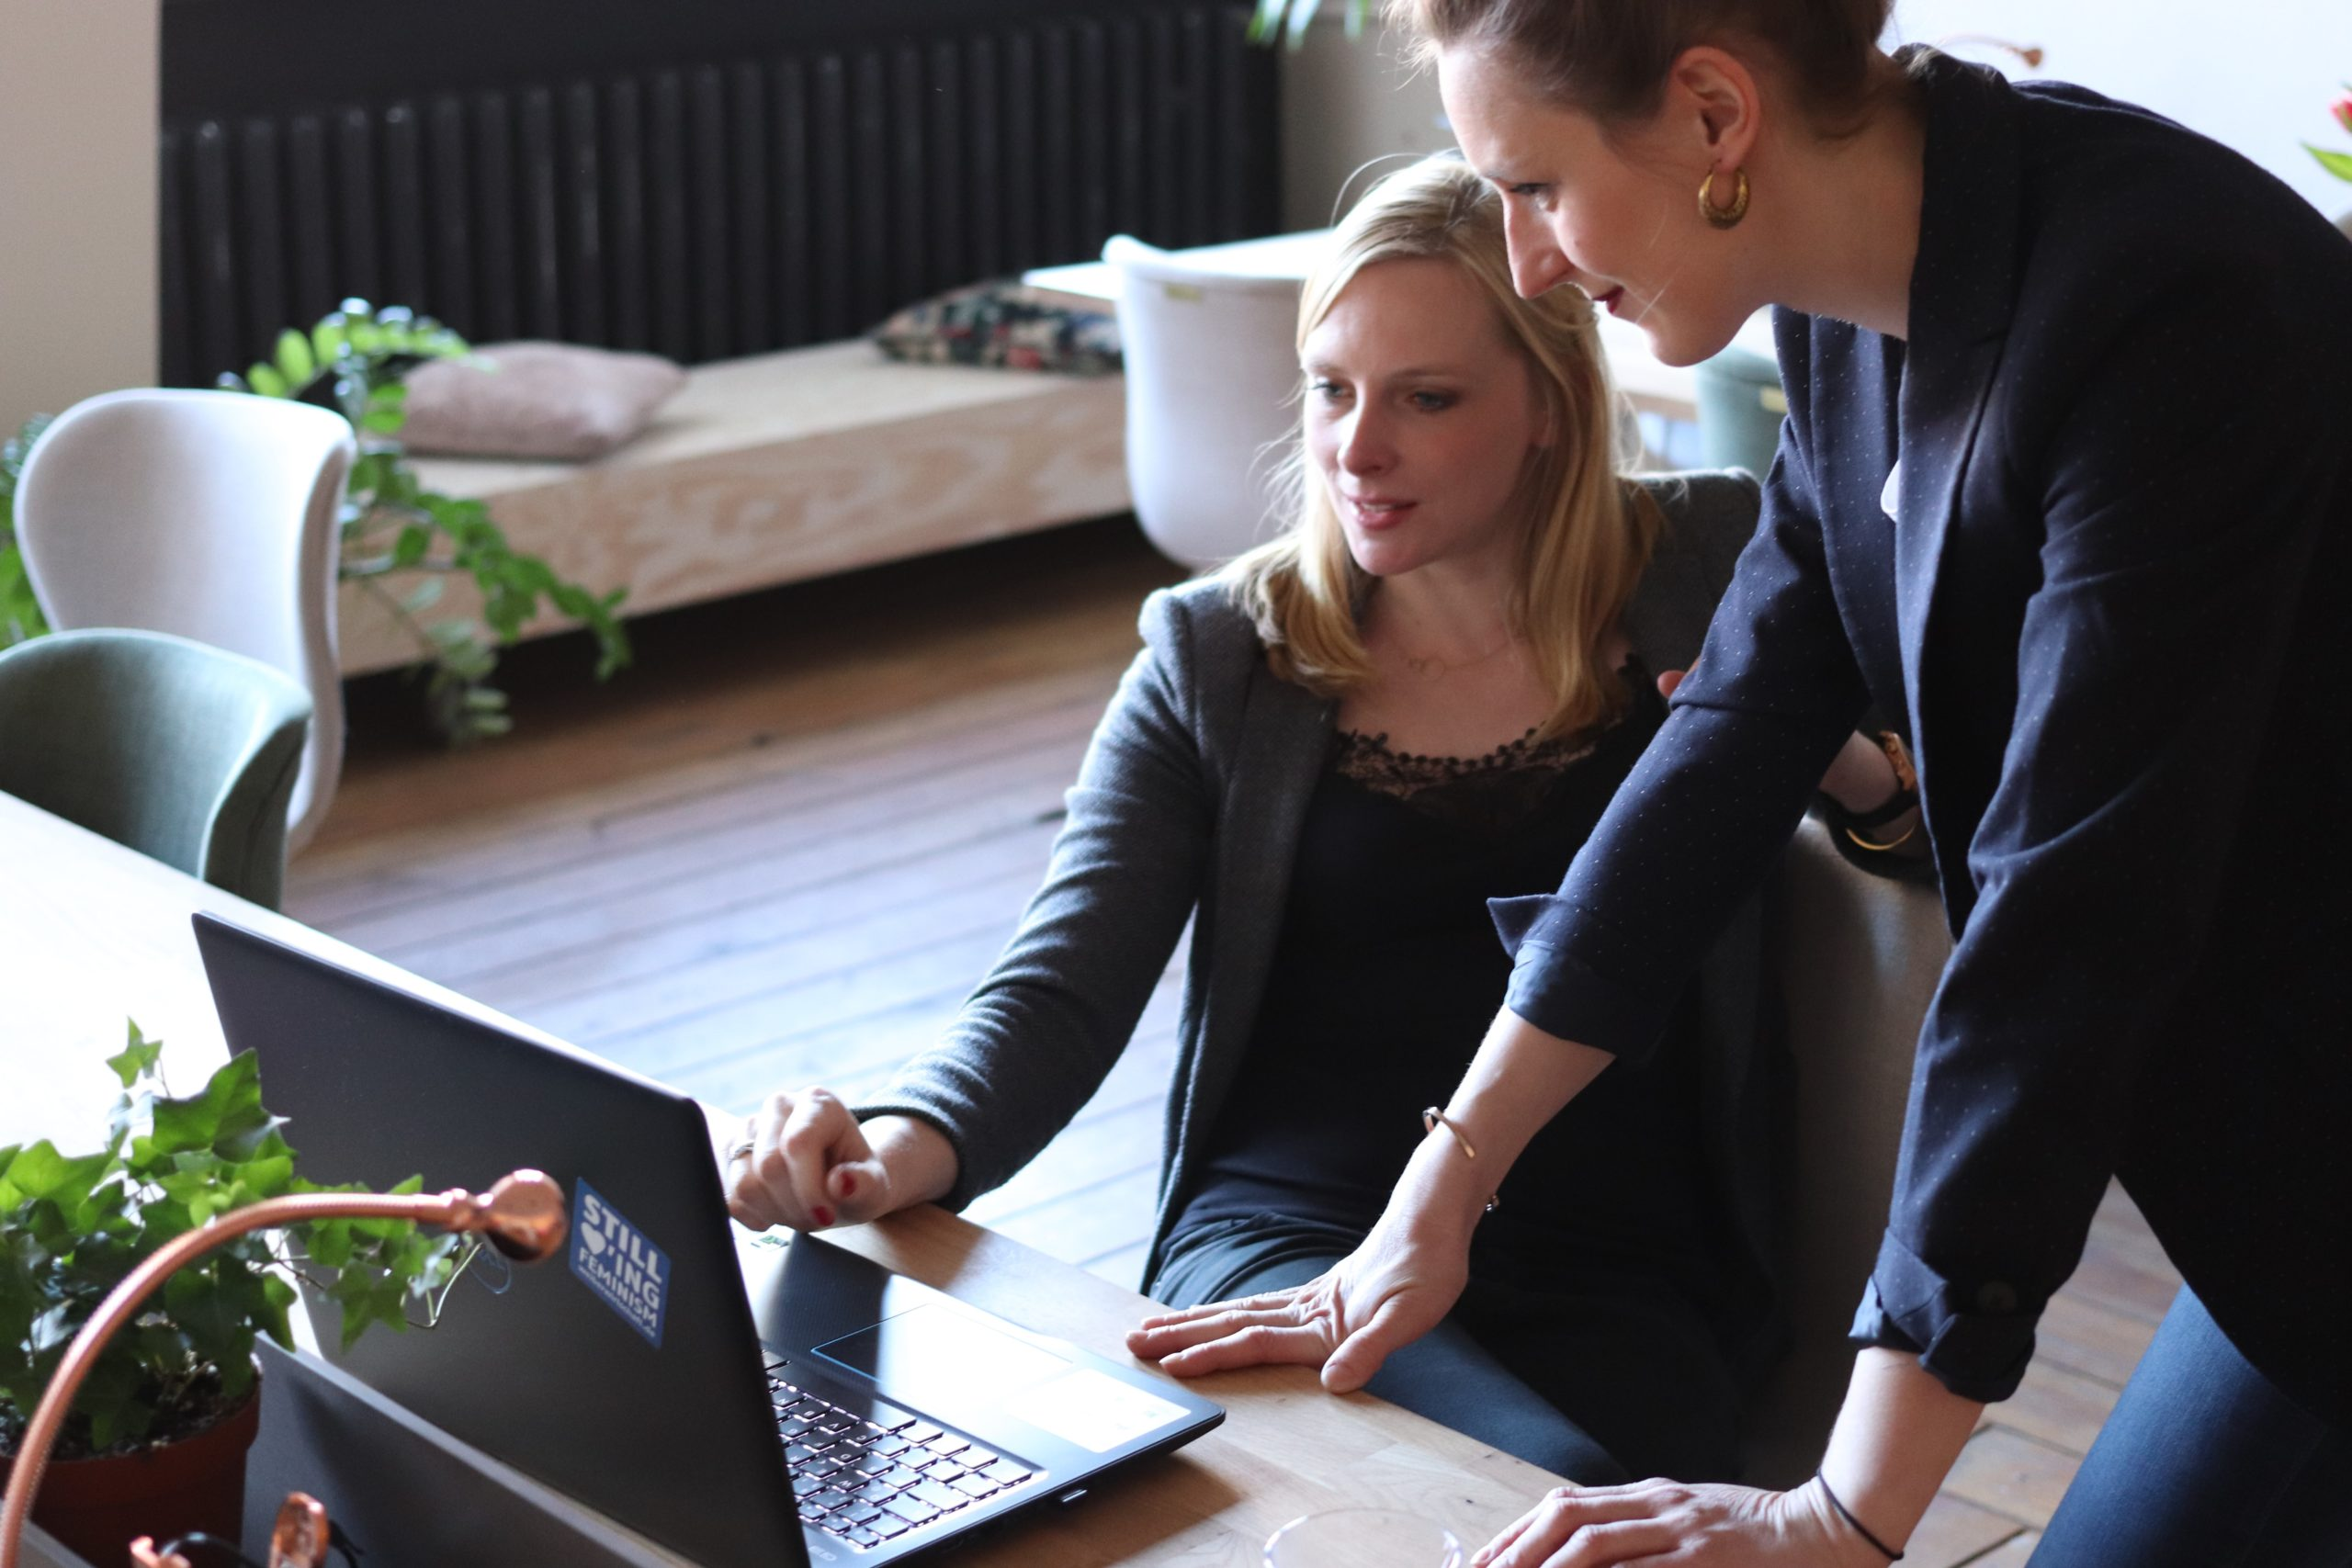 Two people in front of a laptop